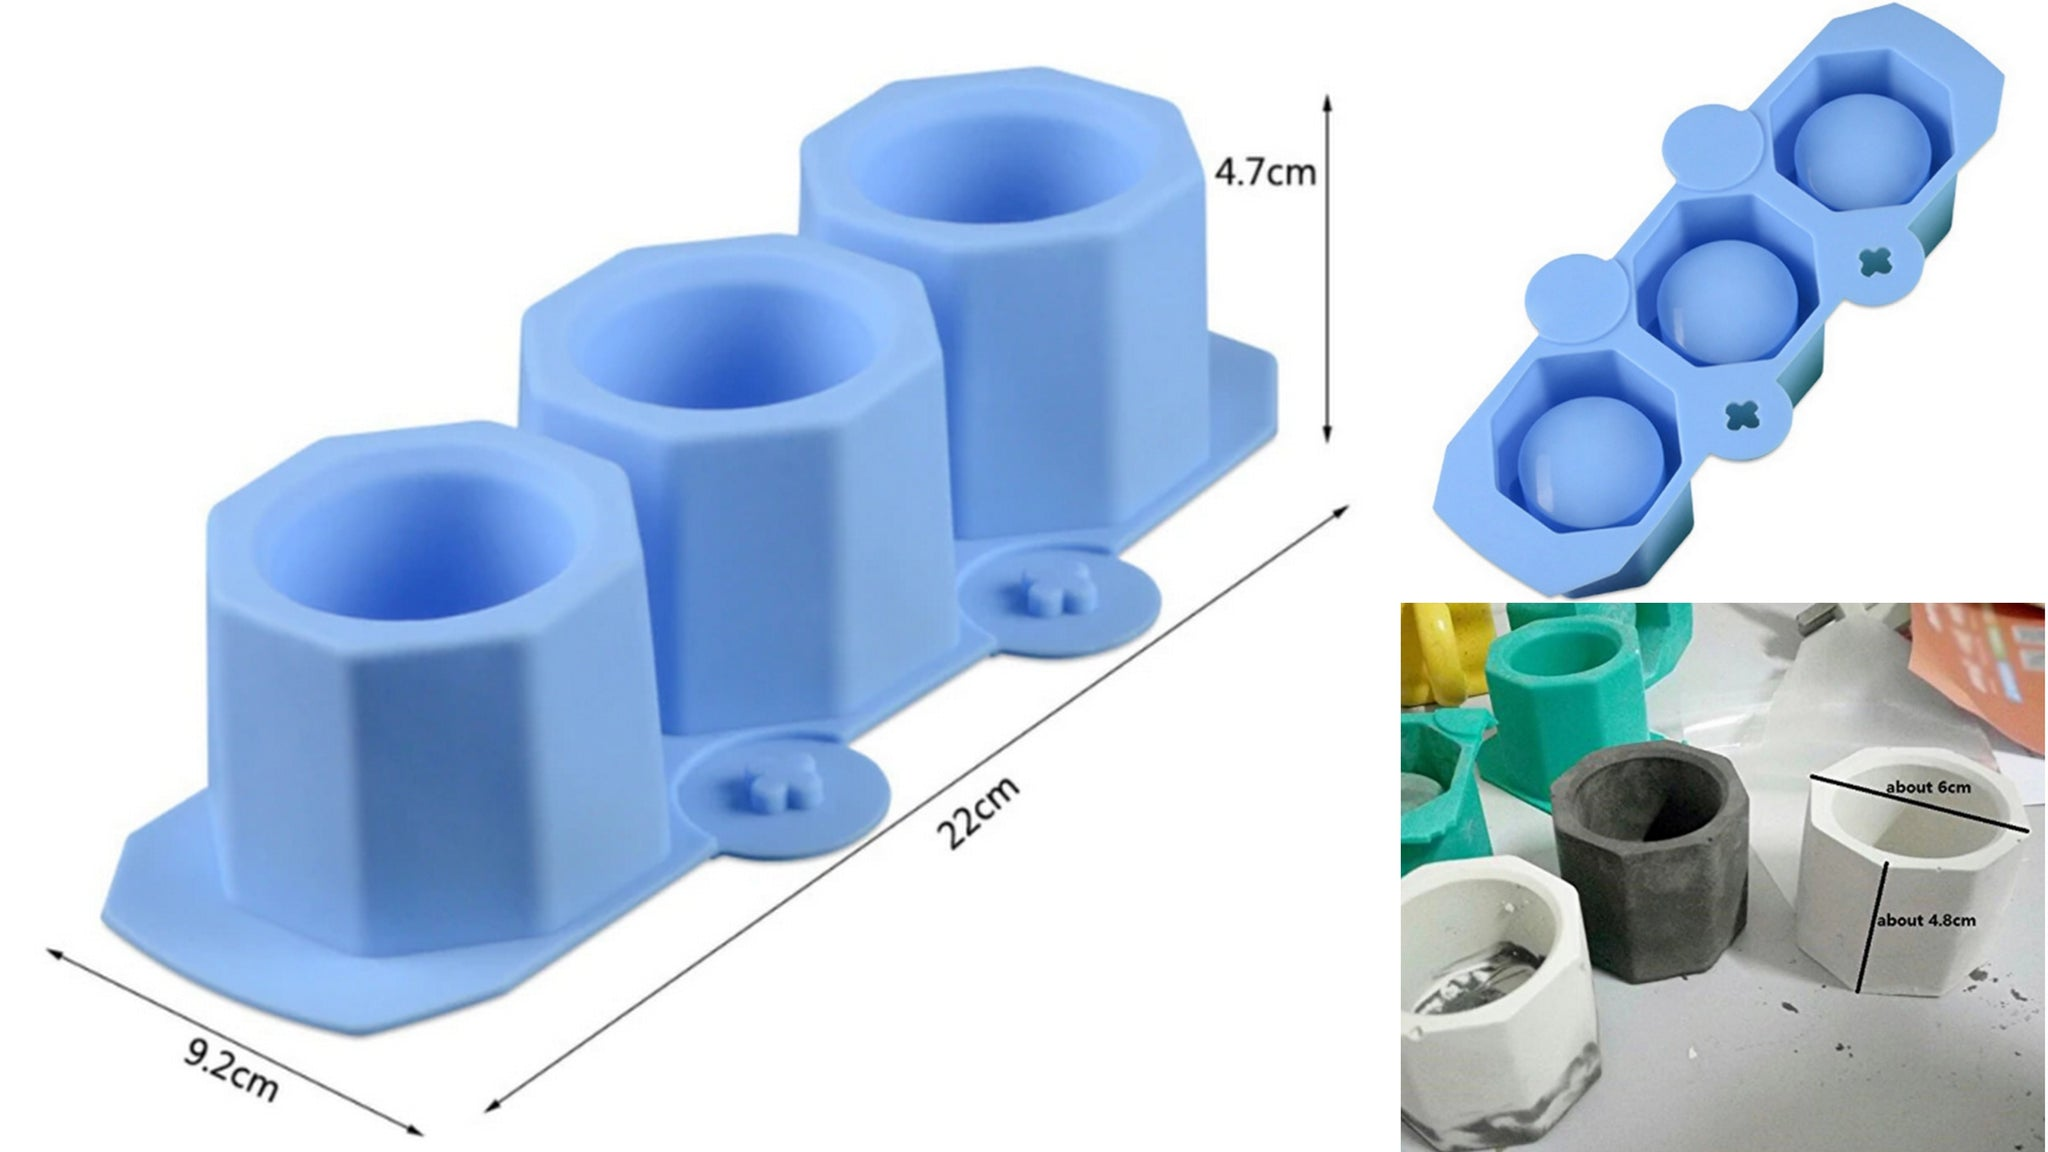 Flower Pot Plant holder Small Mould Silicone Mold for casting UV Resin,Epoxy resin and concrete